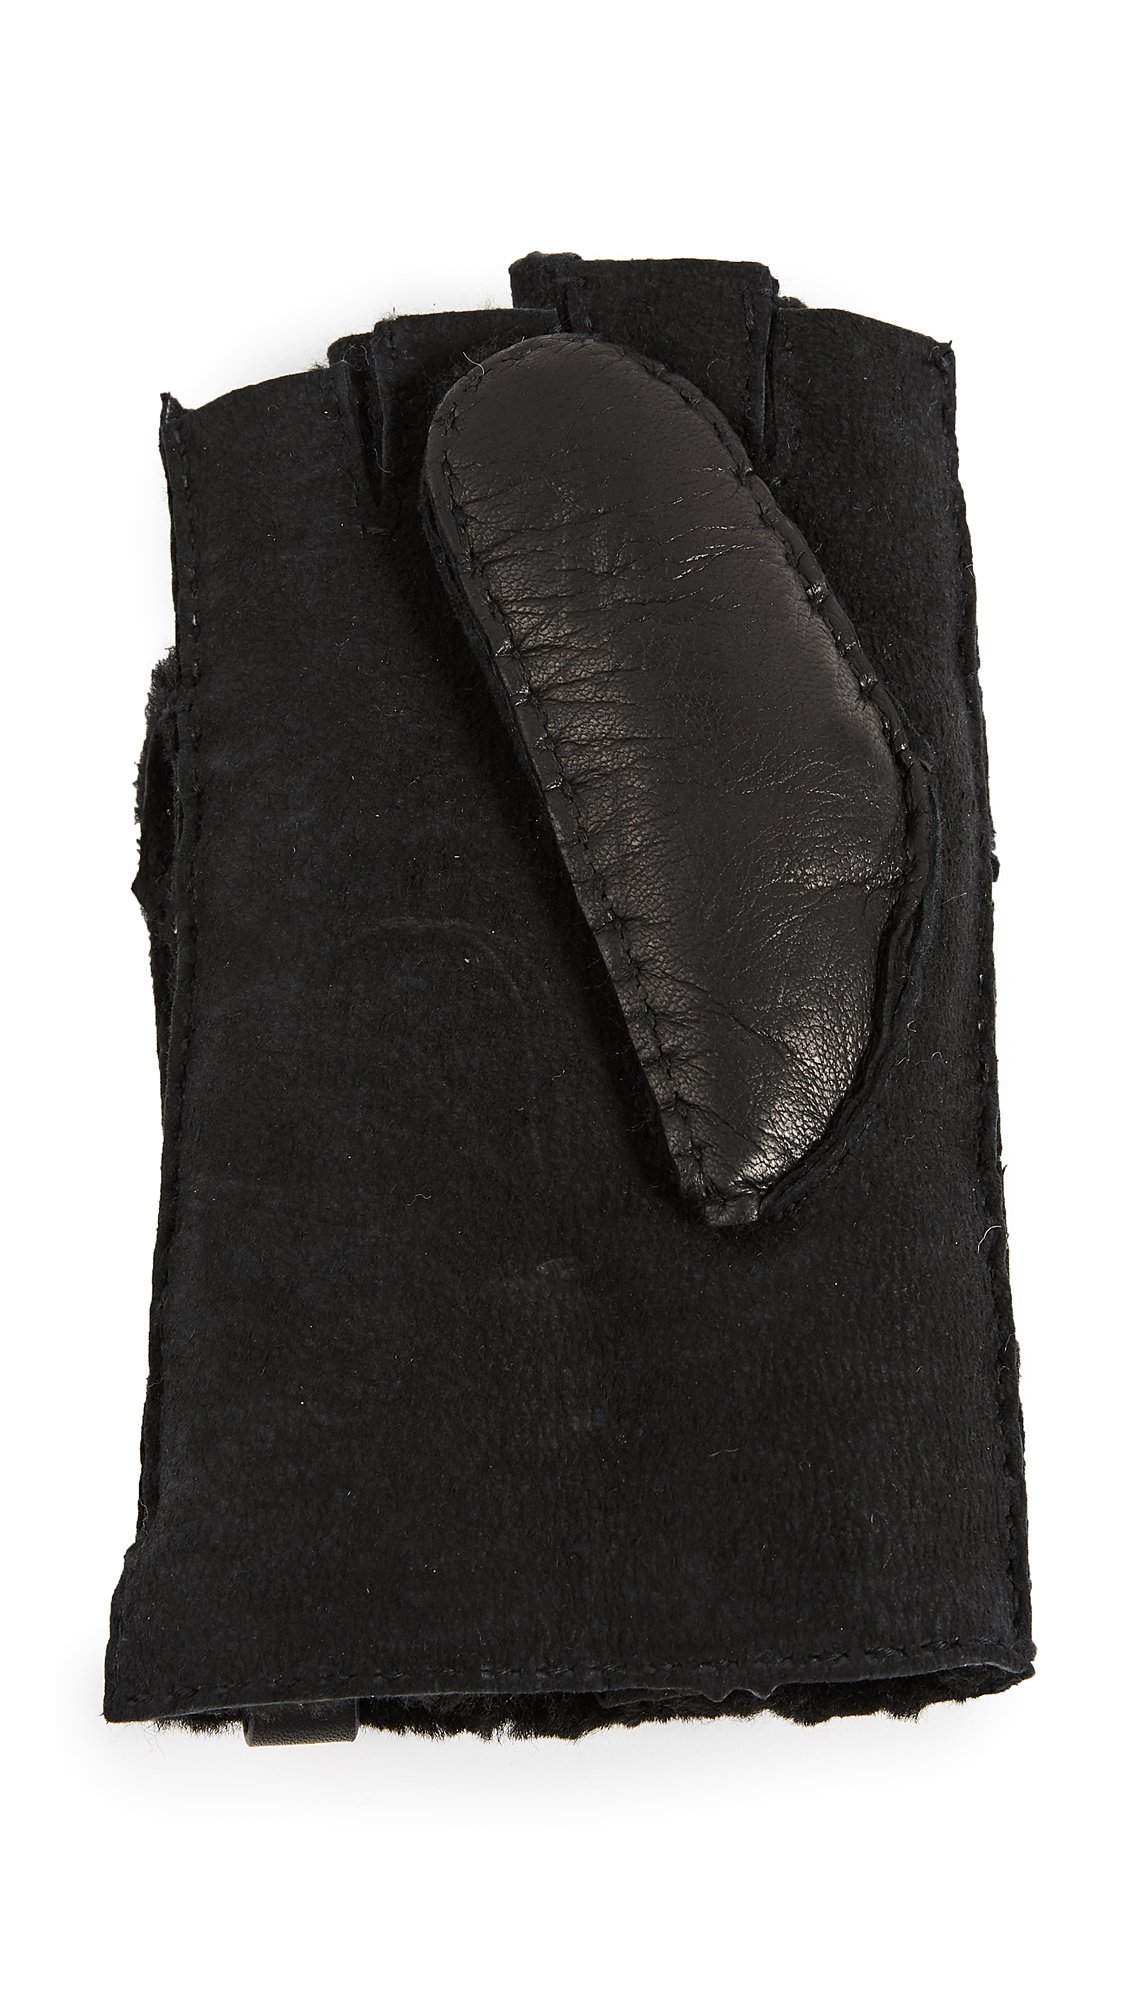 Mackage Women's Chukka Leather Pop-Top Mittens, Black, Medium by Mackage (Image #4)